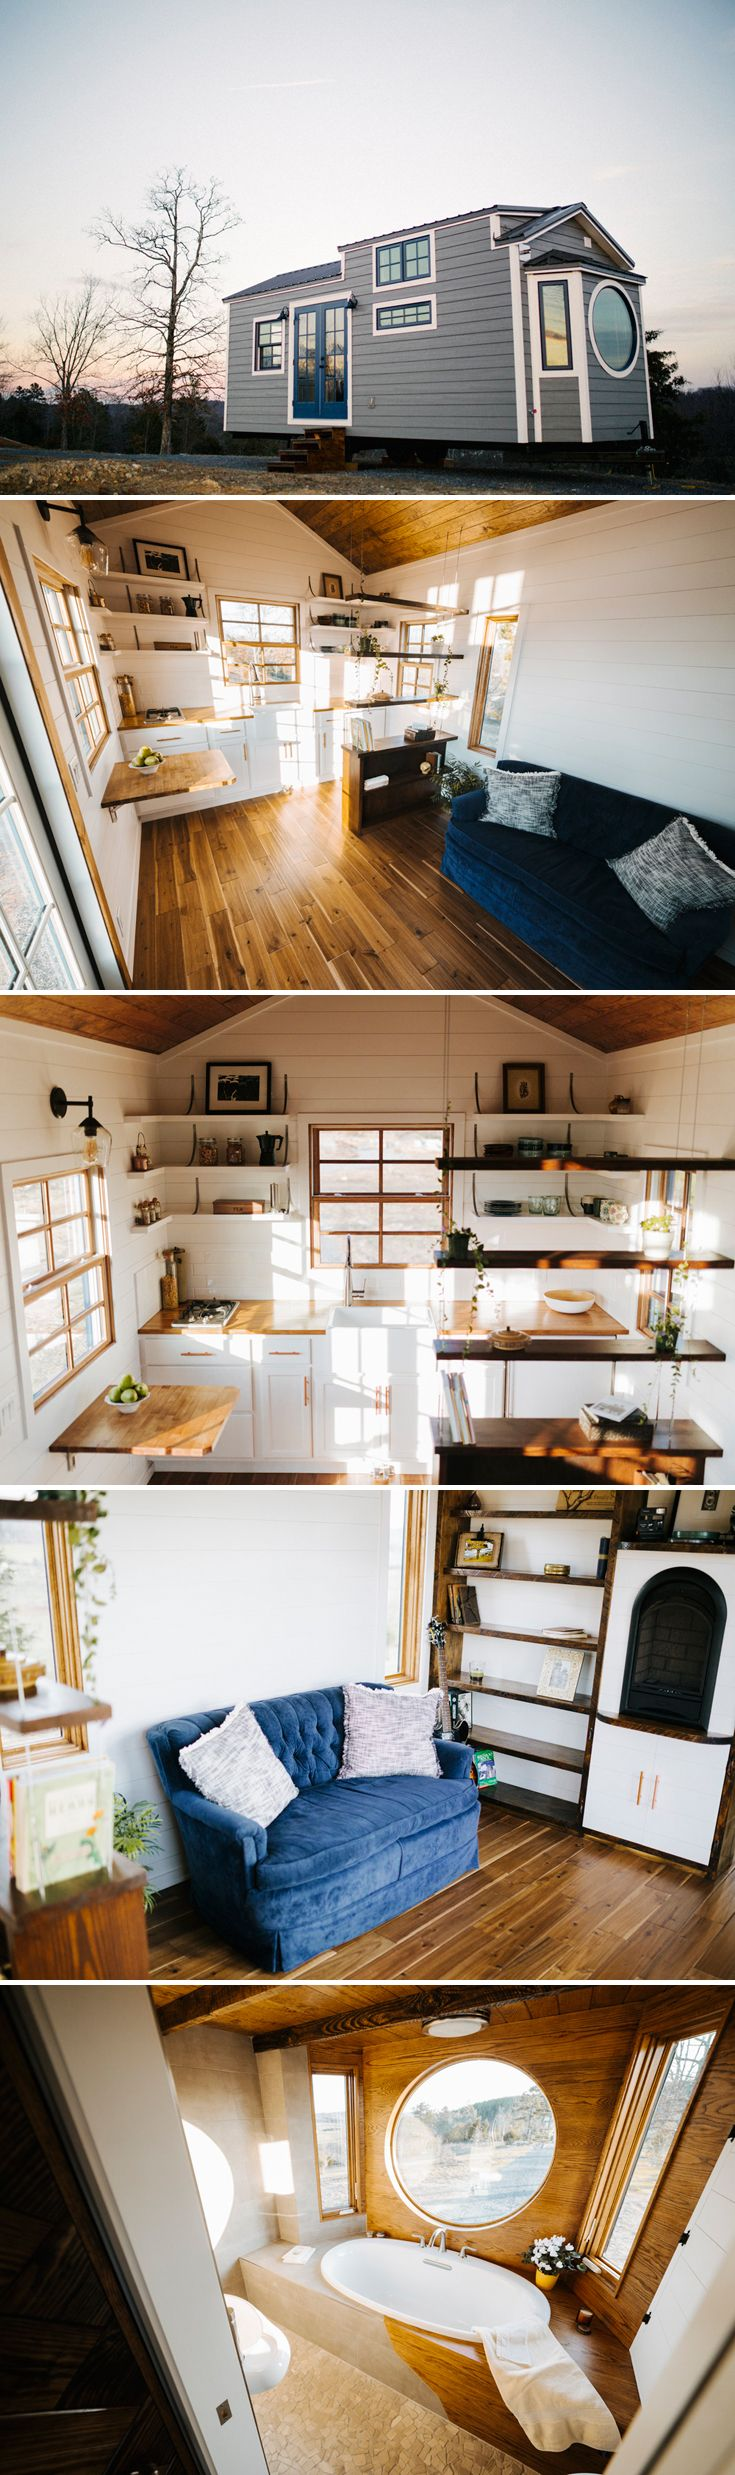 This 24' tiny home is 10' wide to accommodate a bed on the main level and a full size soaking tub with a tile/wood surround and large monocle window.